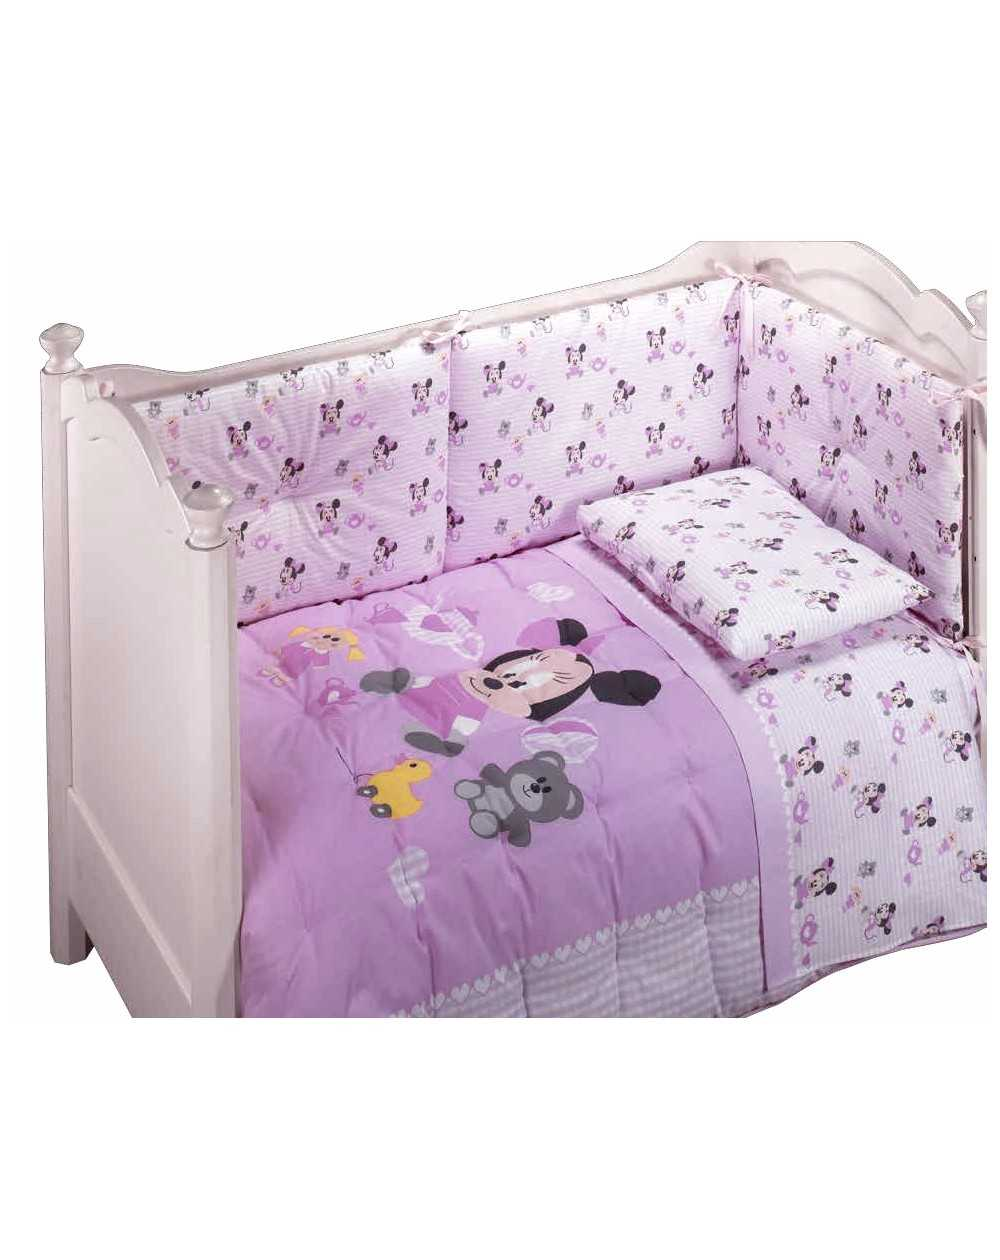 tour de lit trapunta e paracolpi per lettino minnie baby disney by caleffi disponibile in tre colori. Black Bedroom Furniture Sets. Home Design Ideas